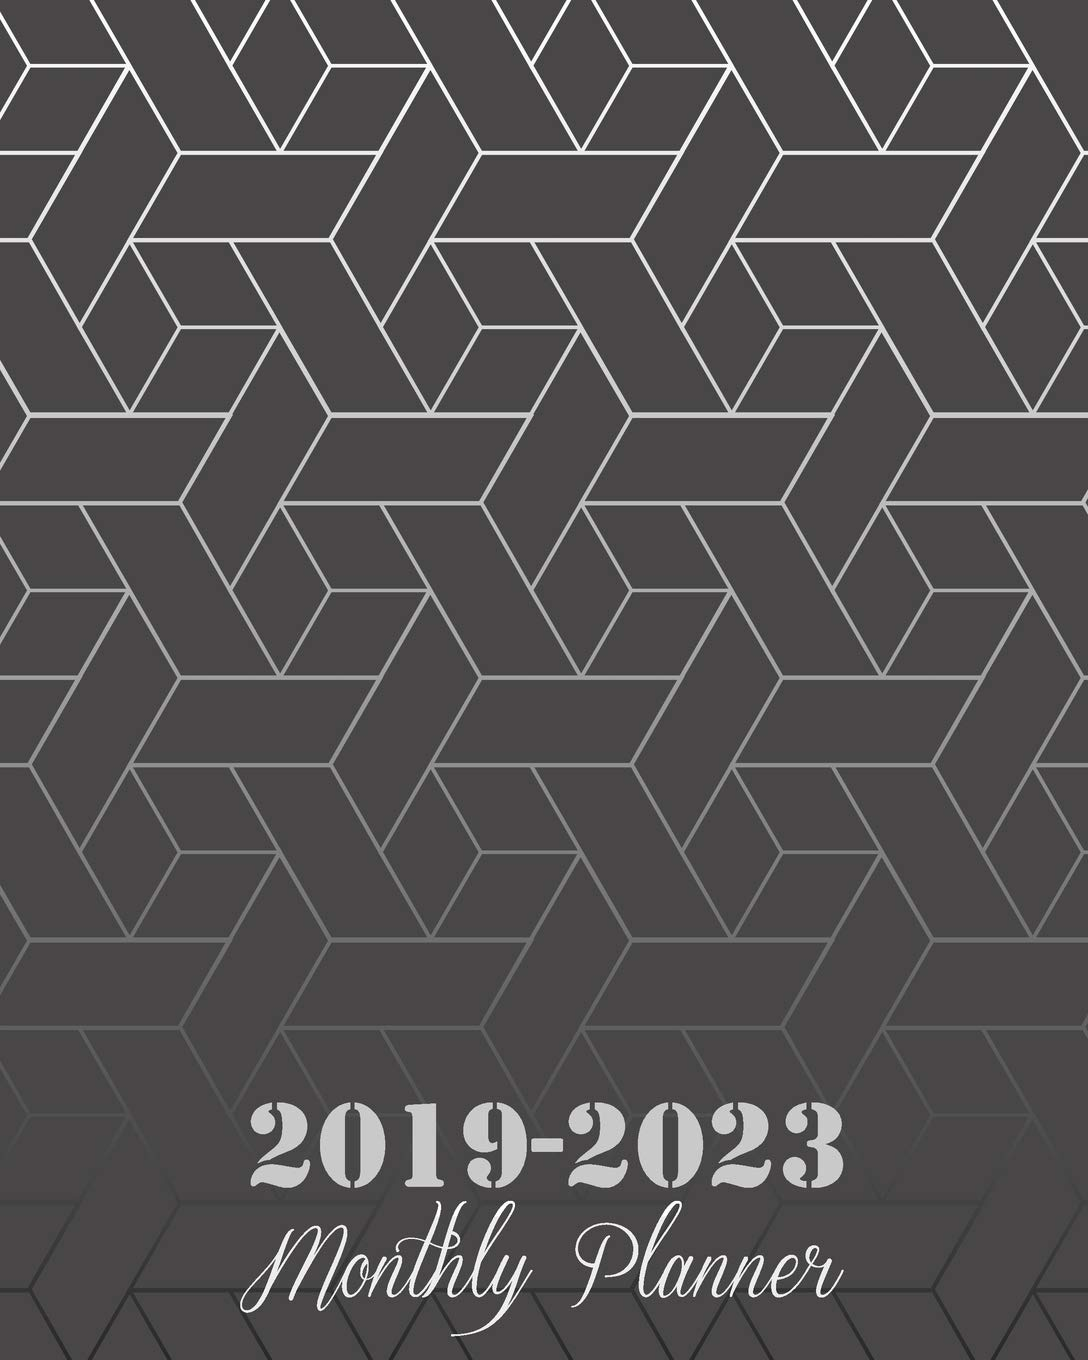 """2019-2023 Monthly Planner: Black Art Abstract Cover, 8"""" x 10"""" Five Year 2019-2023 Calendar Planner, Monthly Calendar Schedule Organizer (60 Months ... With Holidays and inspirational Quotes"""